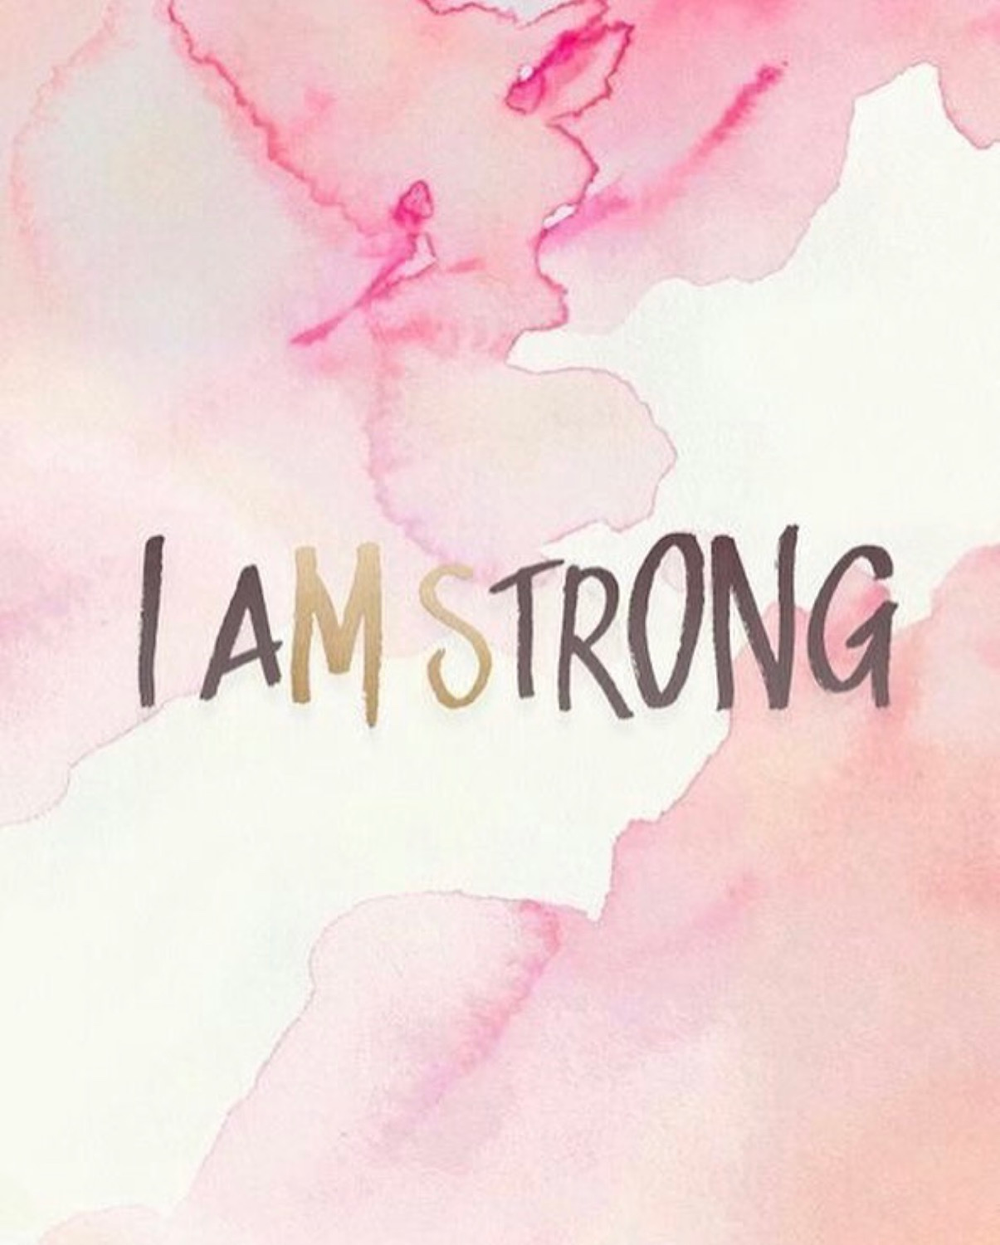 'I am strong' written on pink background